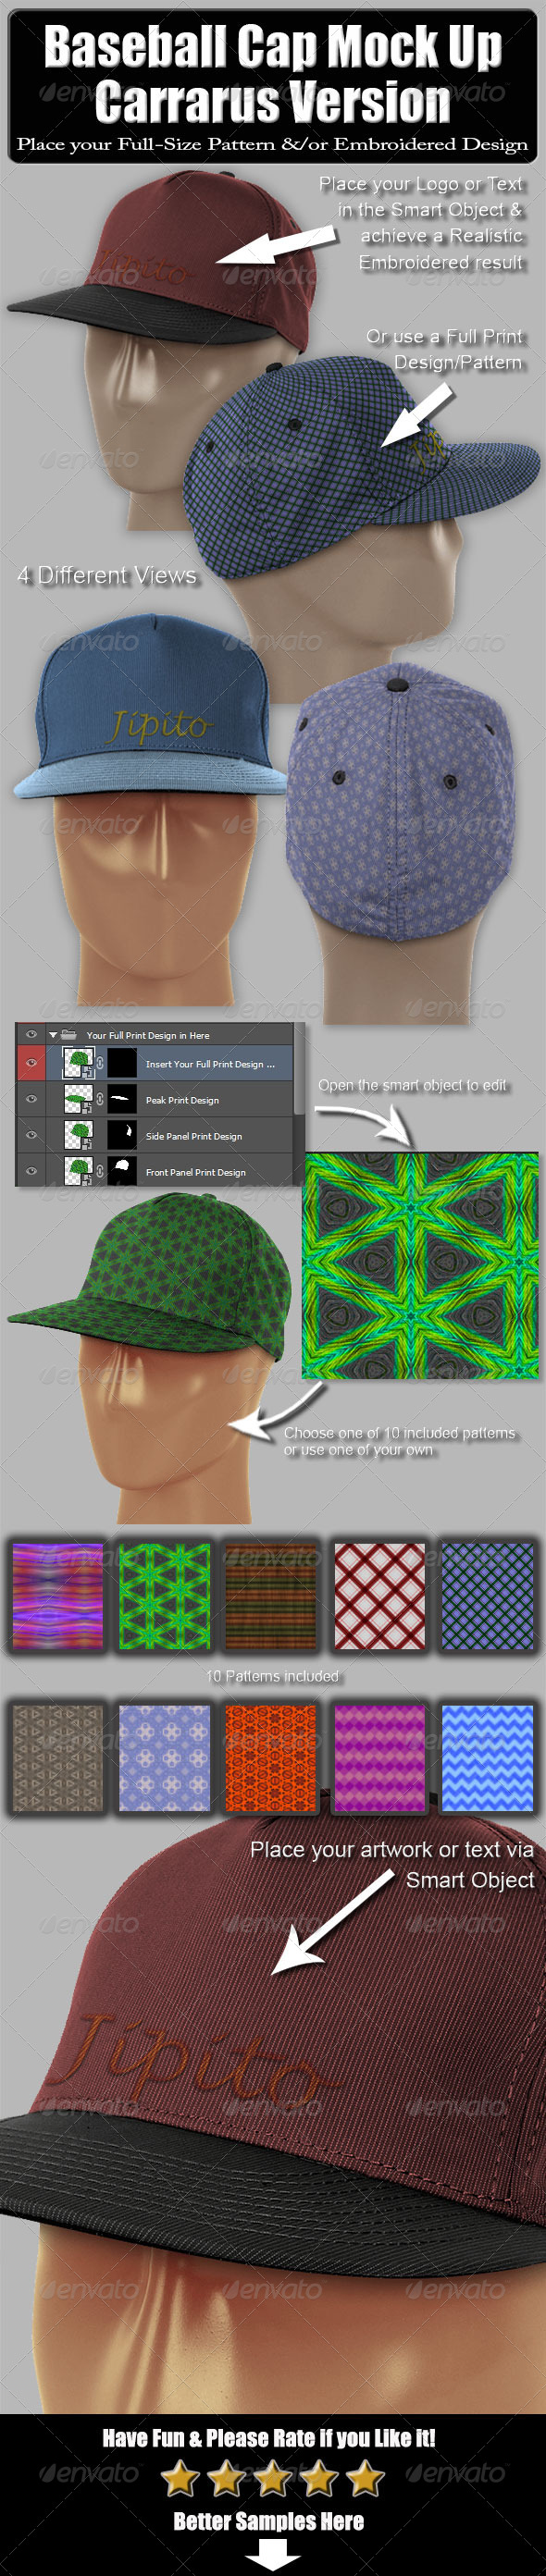 GraphicRiver Baseball Cap Mock Up-Carrarus Version 6460284